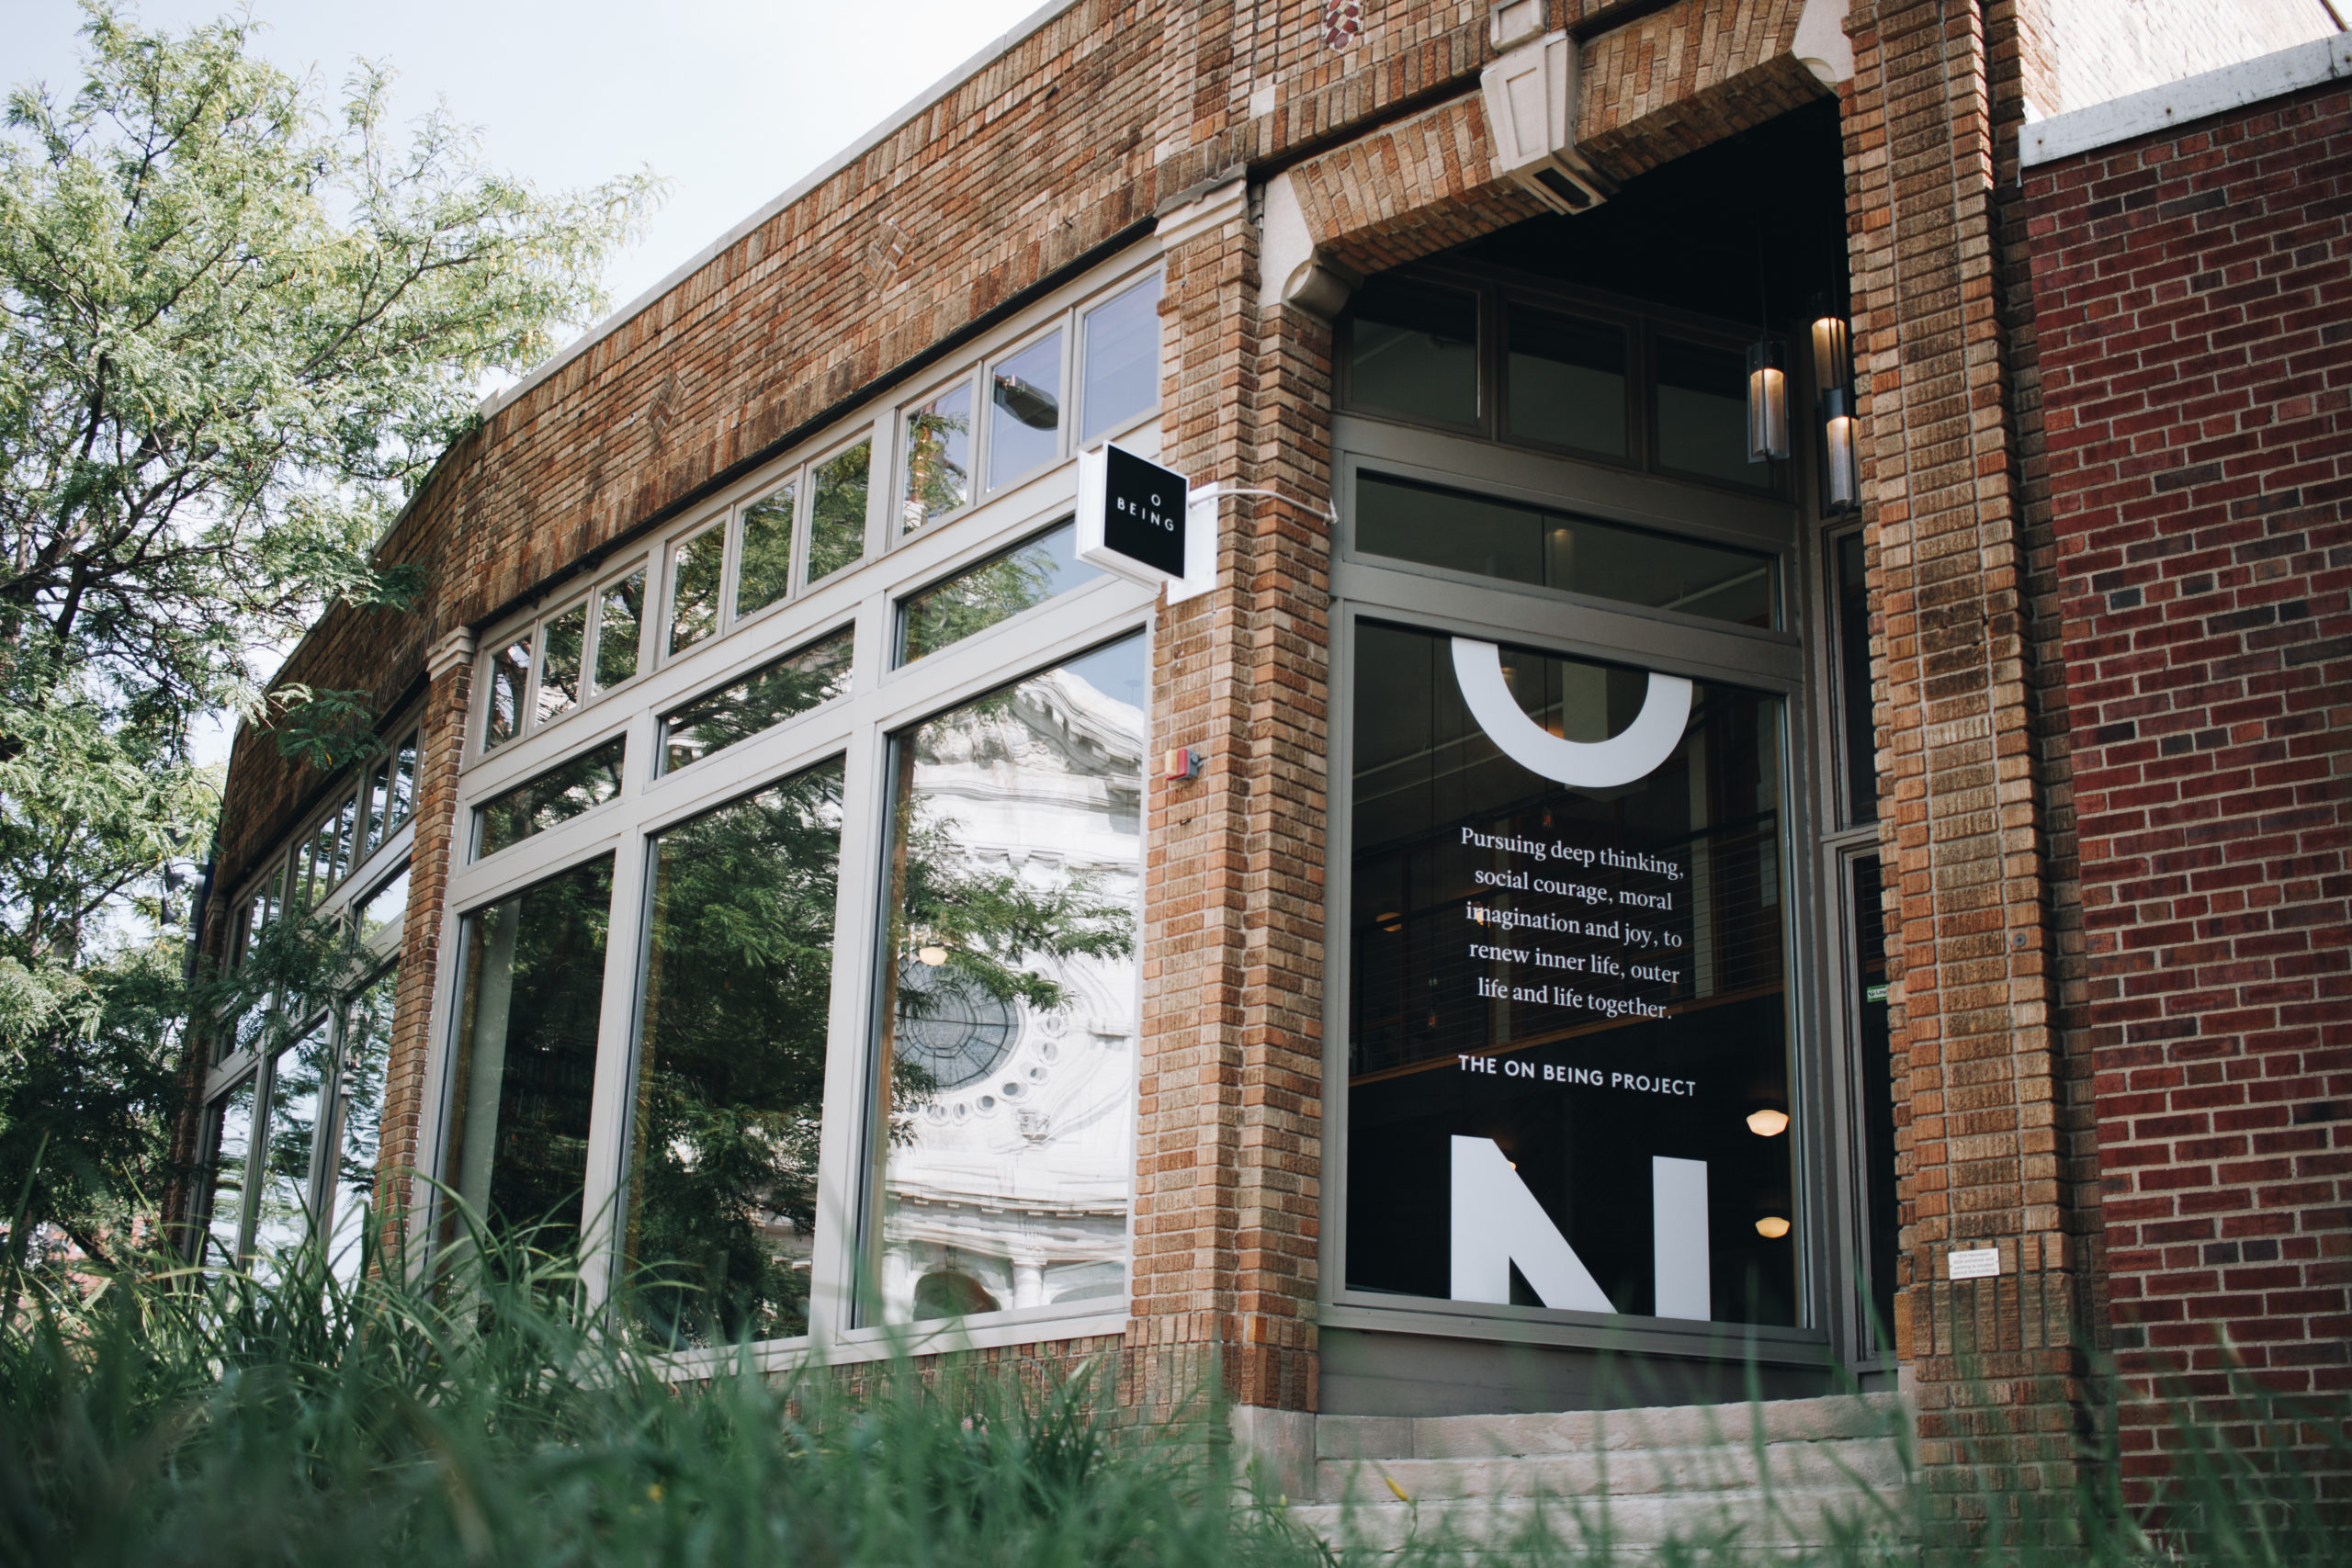 Street view of The On Being Project's studios in Minneapolis, Minnesota.